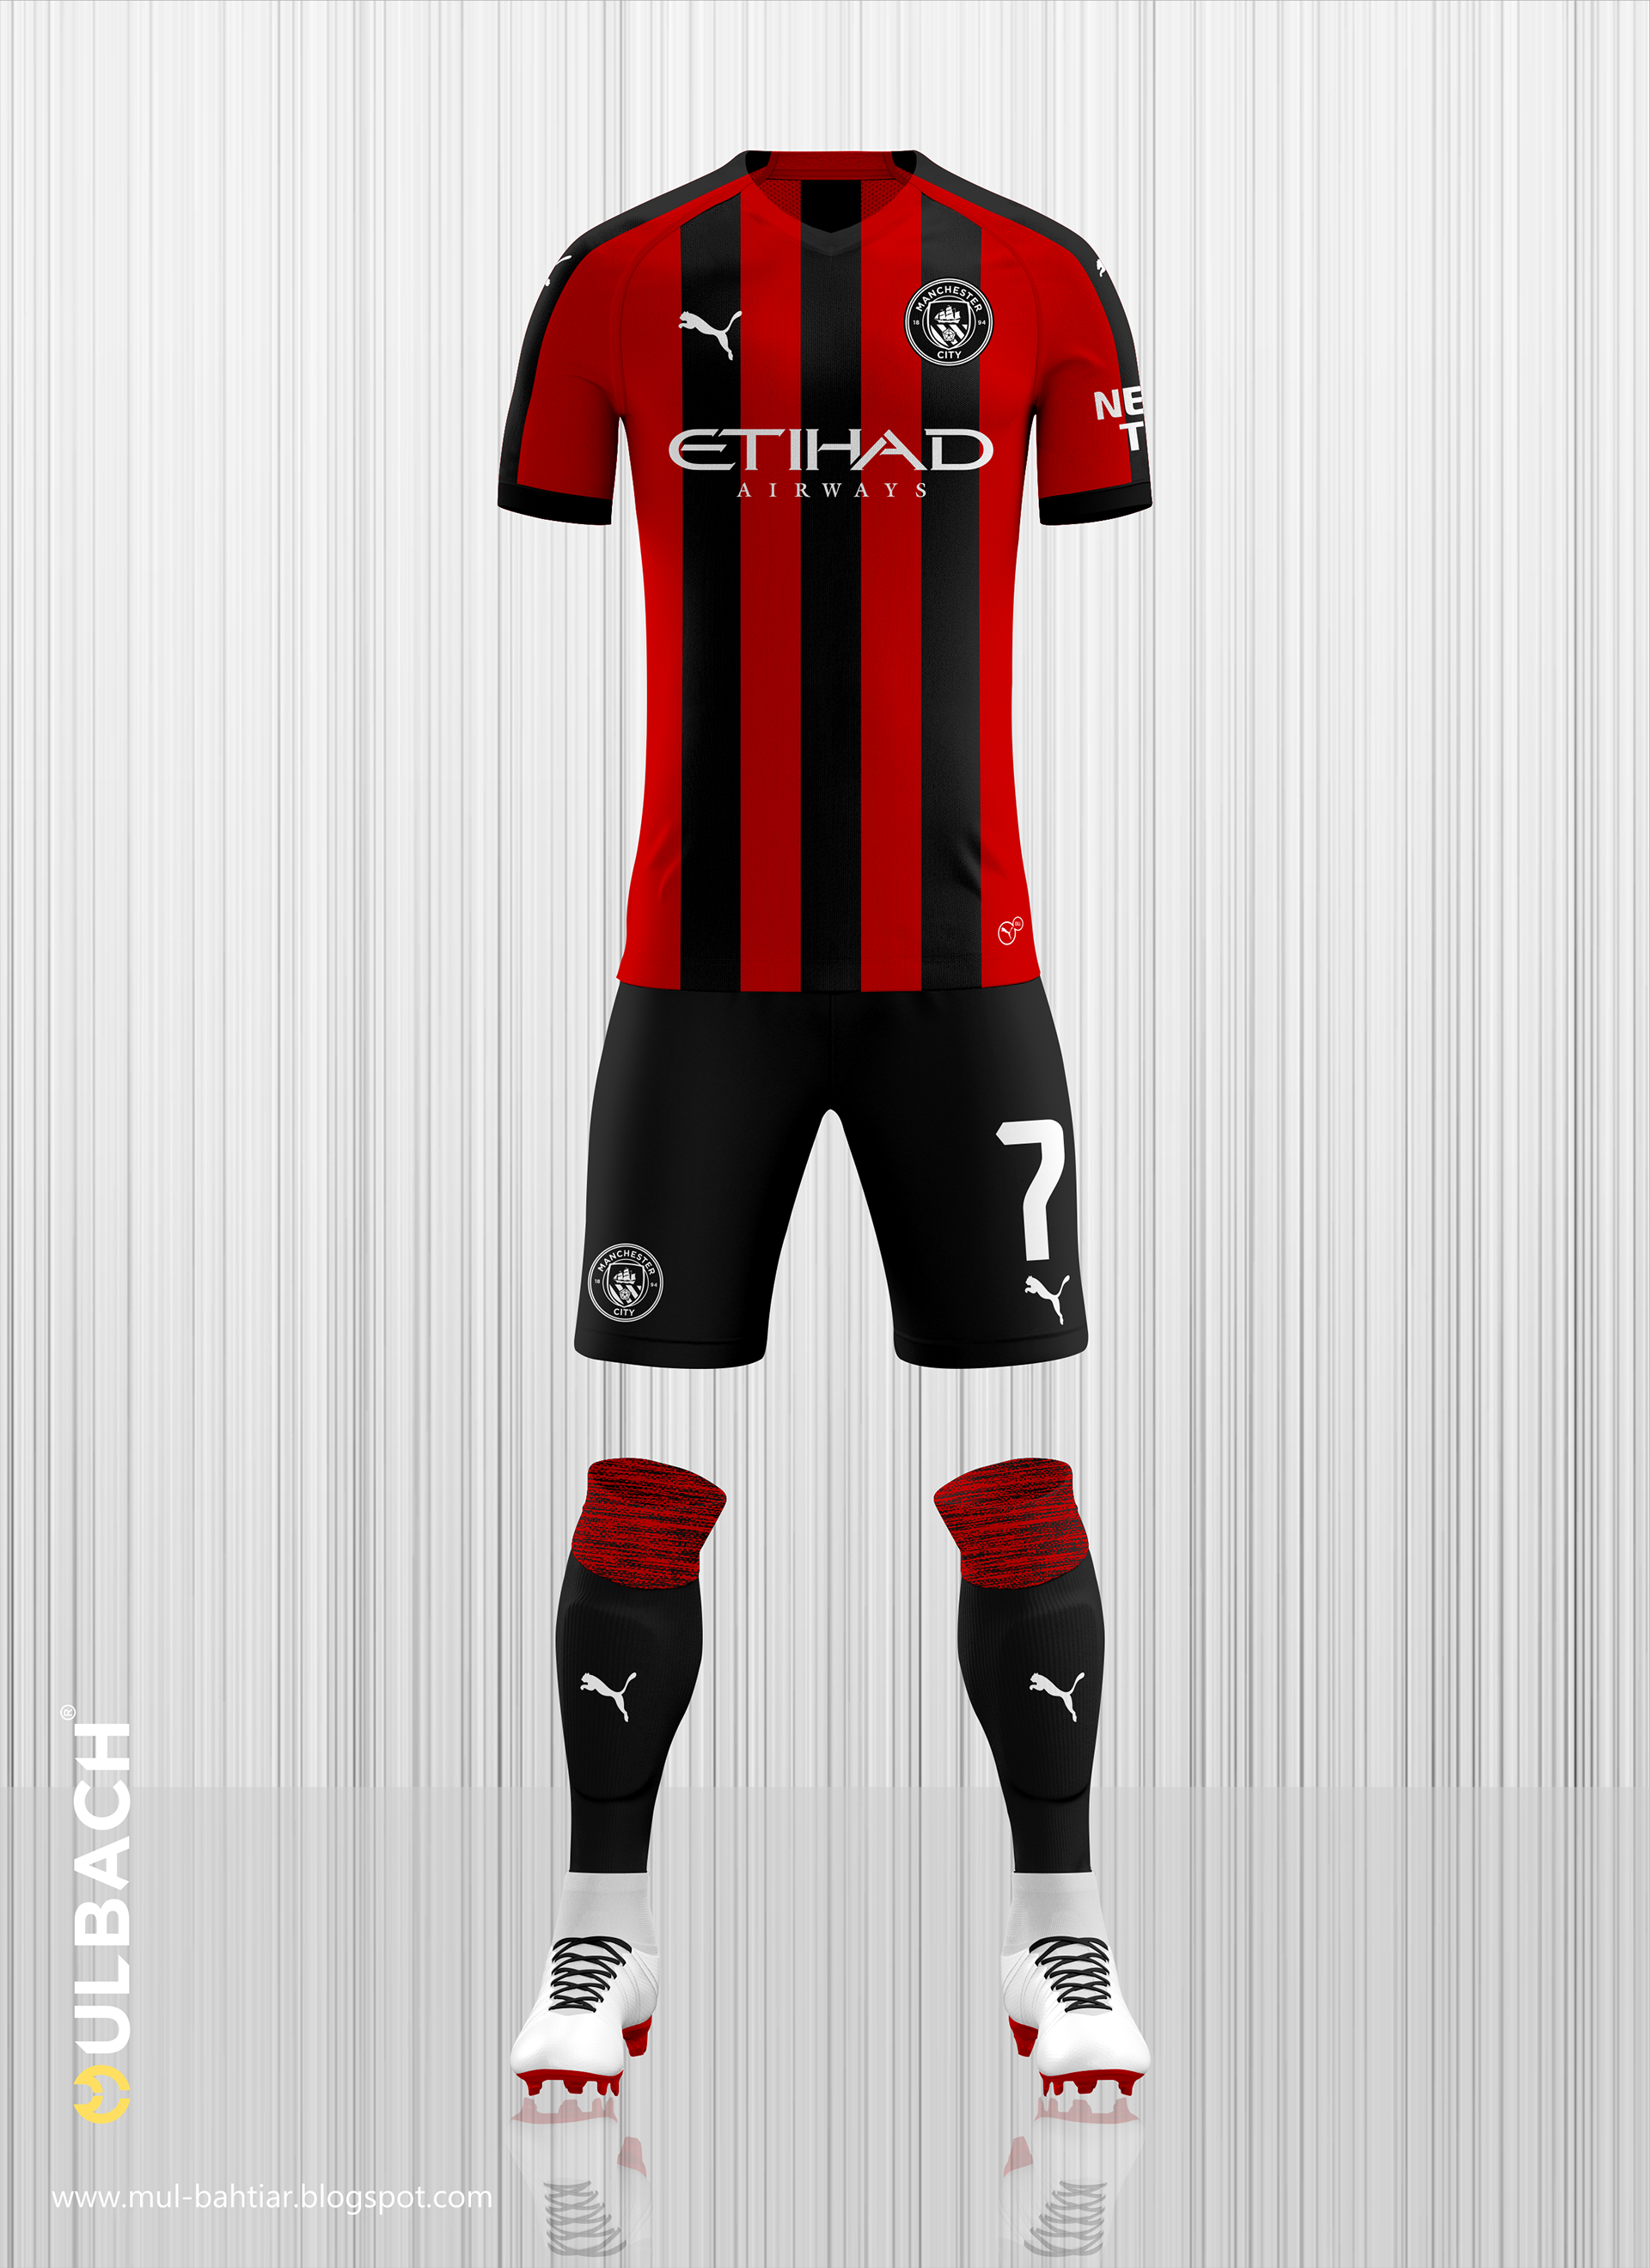 new products da8ba a29b2 Manchester City 2019/2020 Puma Kits Concept on Behance